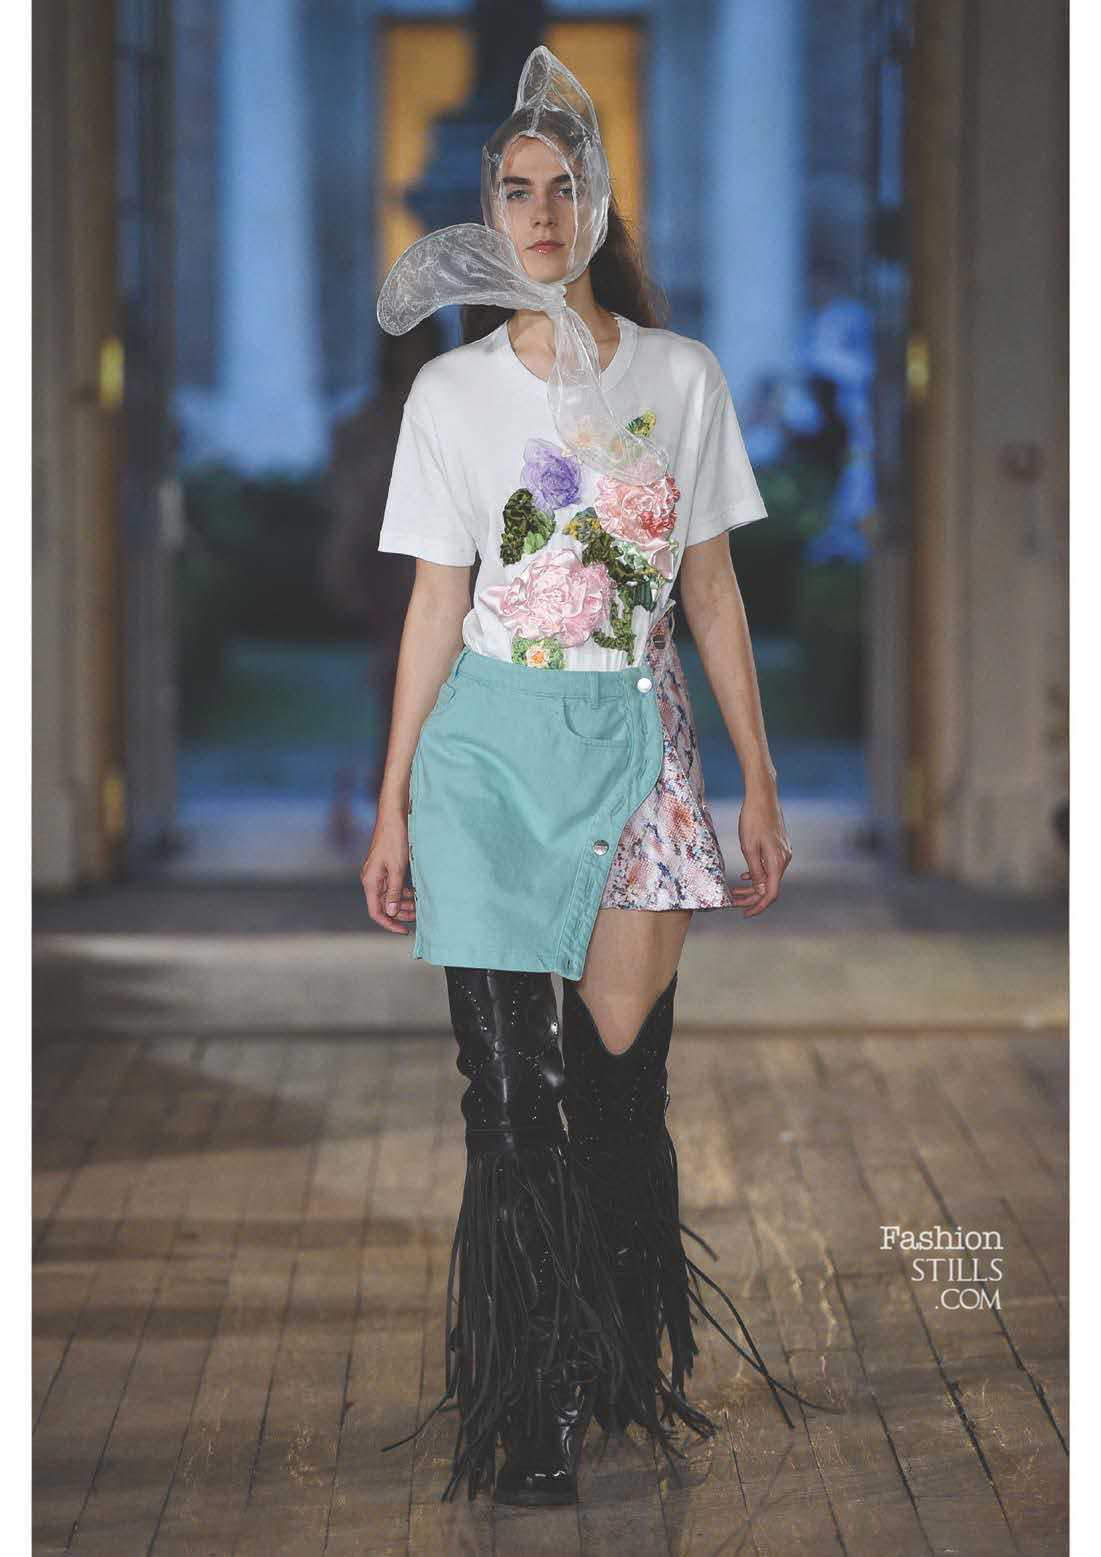 Neith Nyer_1513681565_1a_look-book-_-press-release-ss18-neith-nyer-014.jpg